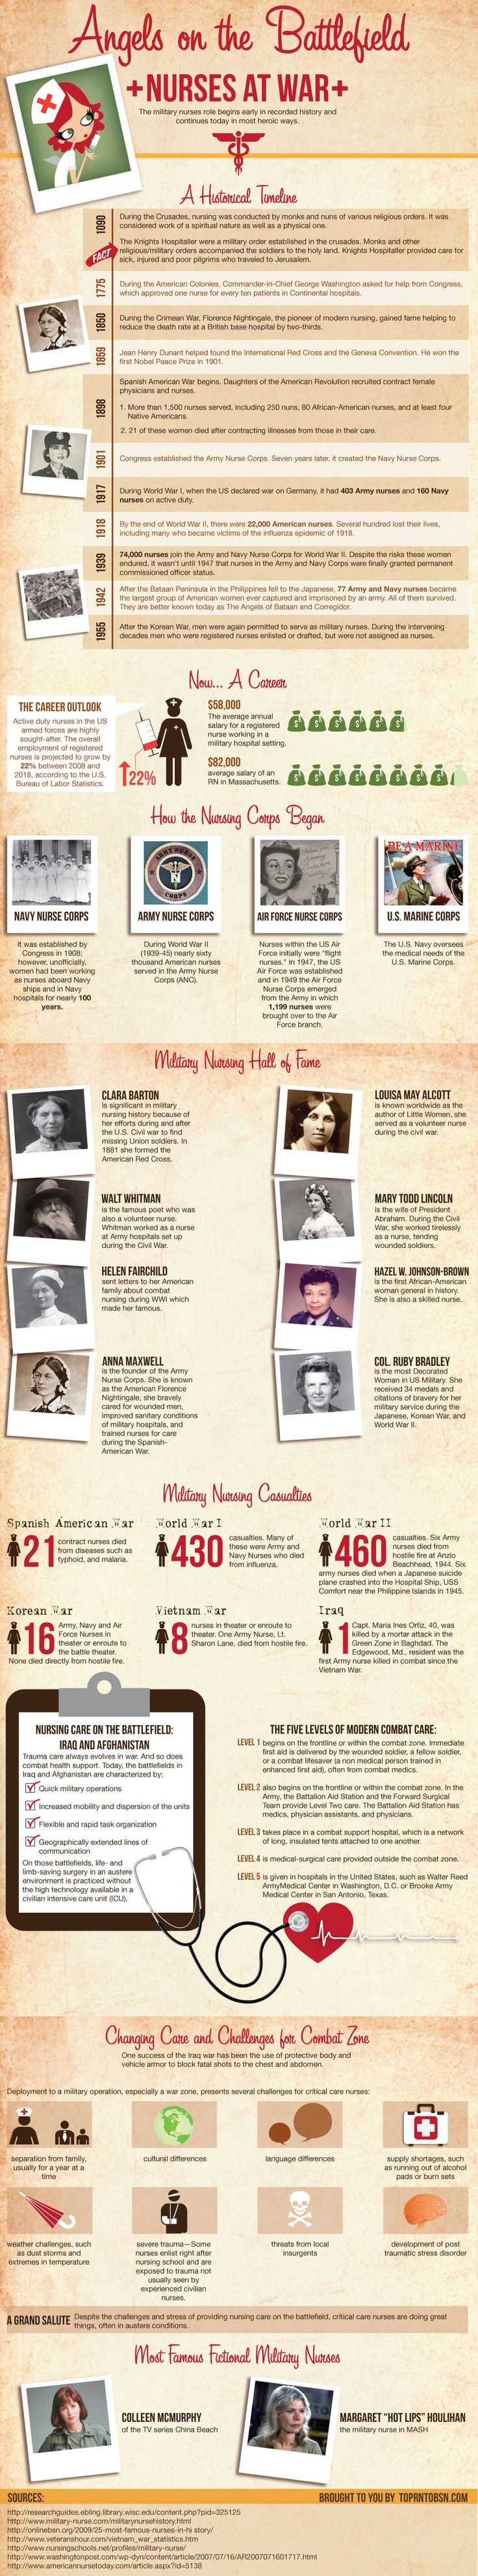 17 best images about nursing vintage nurse flight infographic angels on the battlefield nurses at war nursing essaycareer